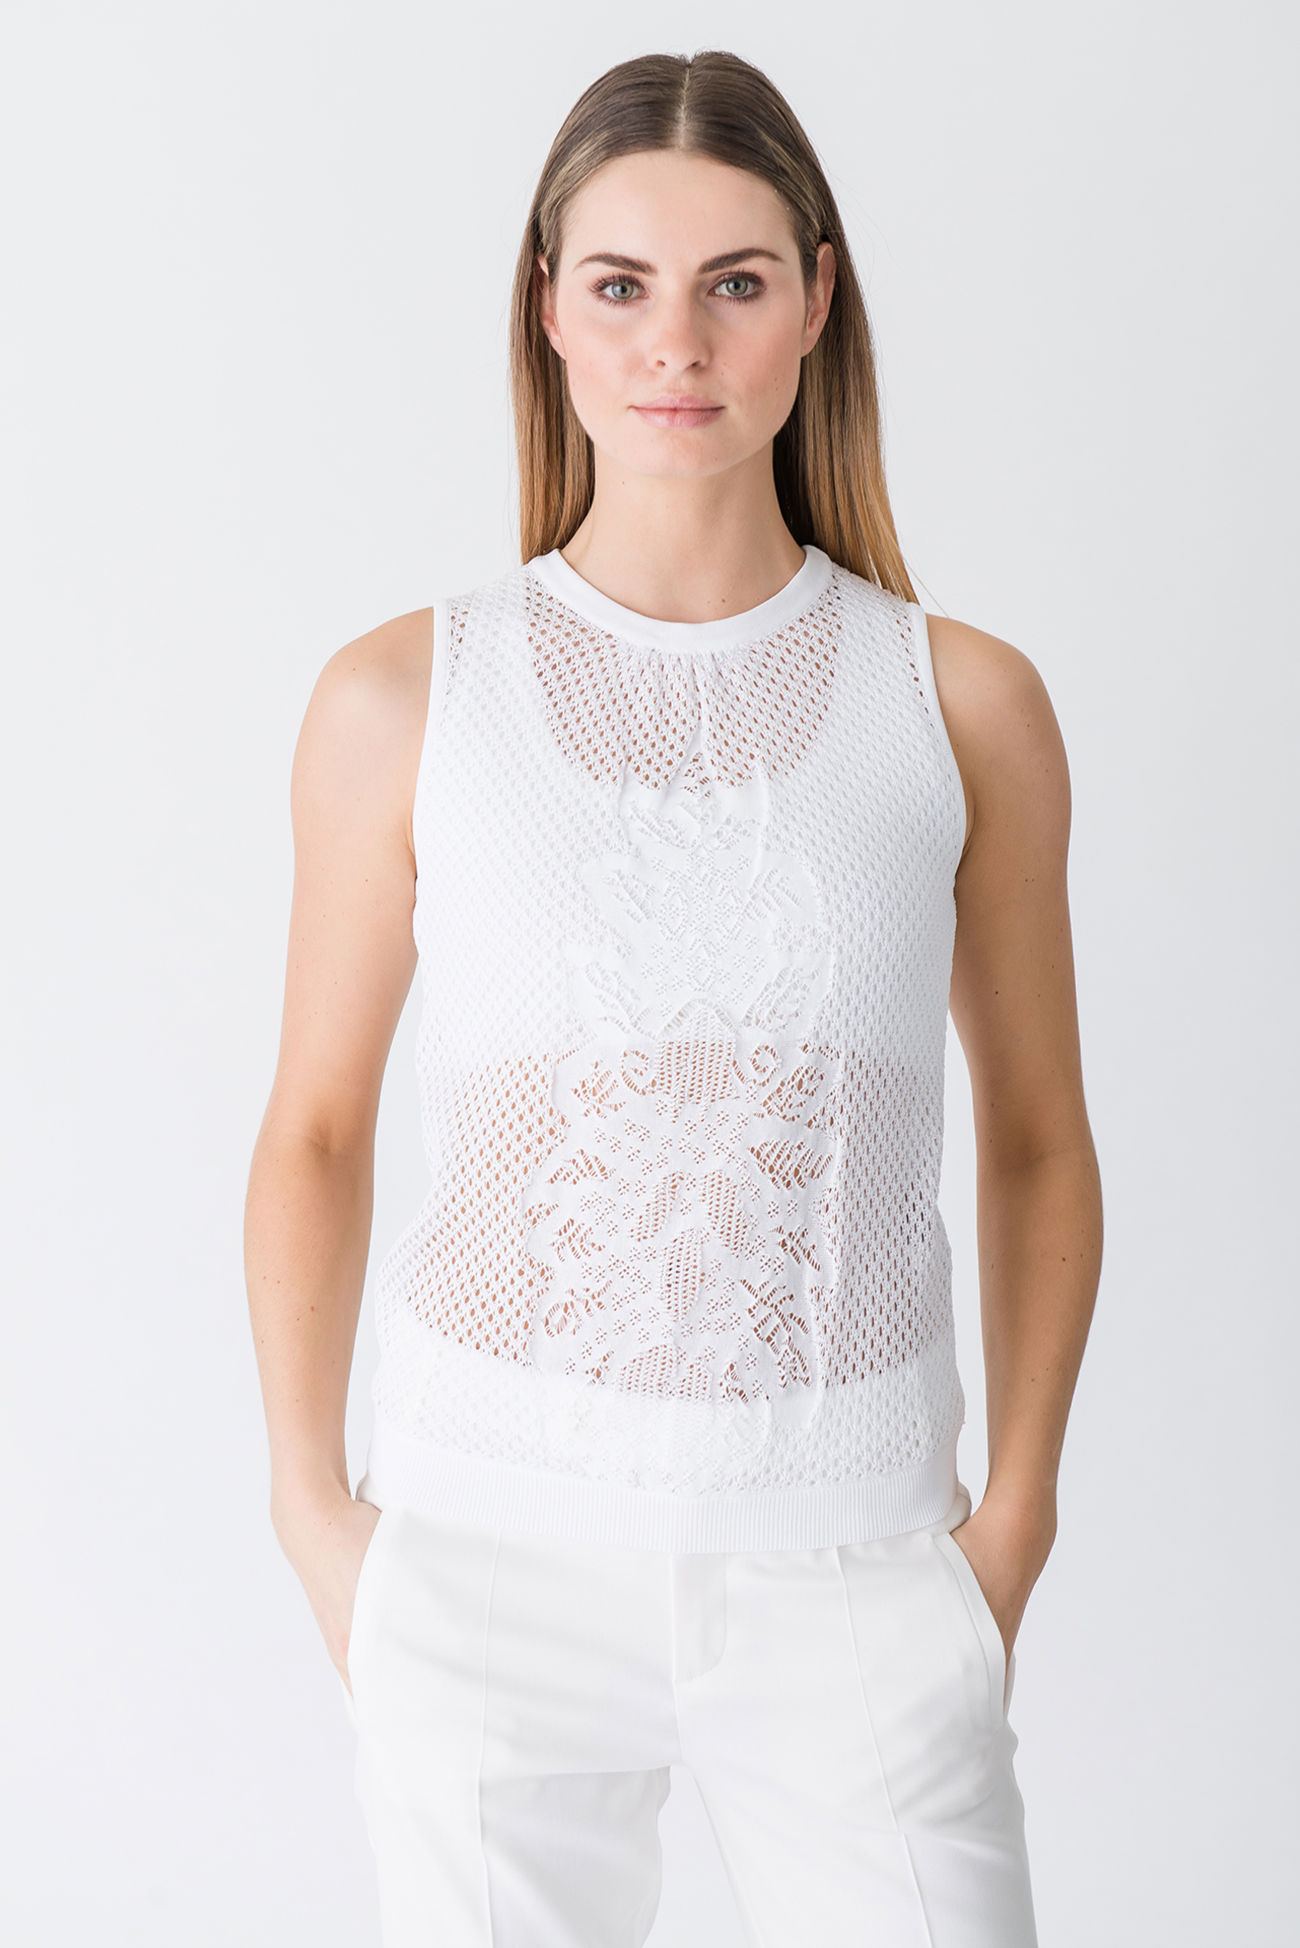 Casual tank top made of lightweight cotton knit